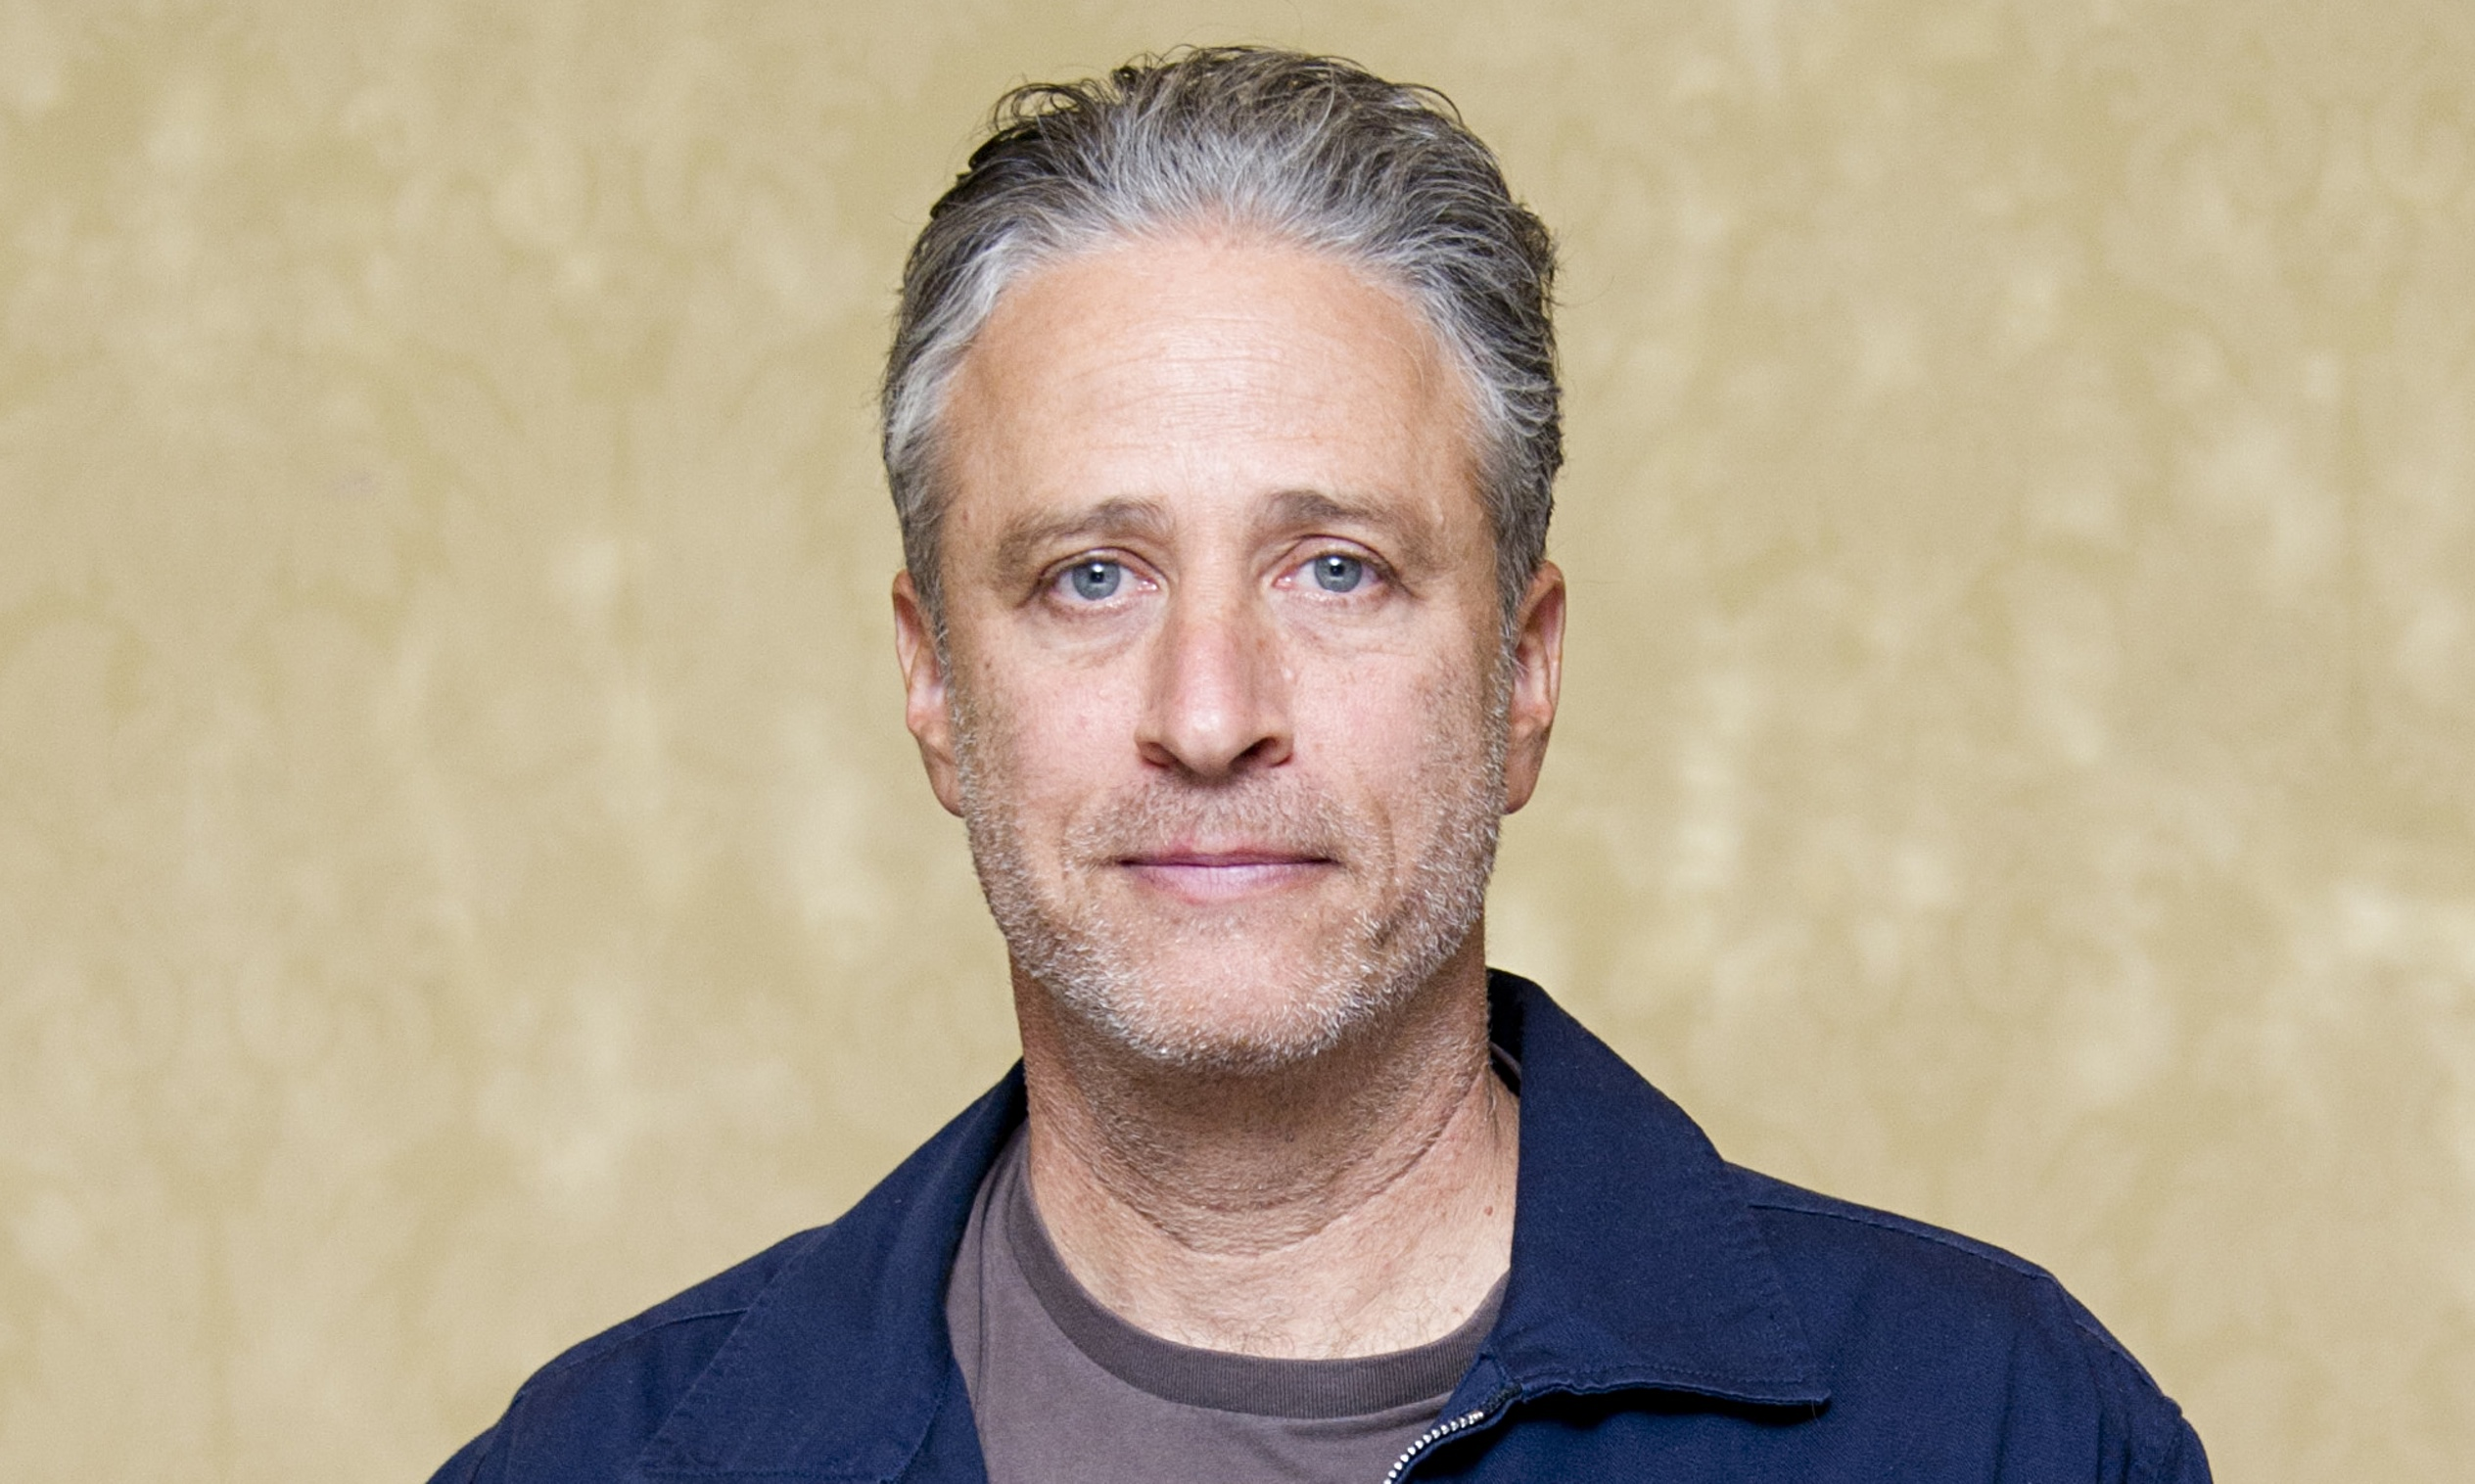 jon stewart �when you get someone arrested you feel